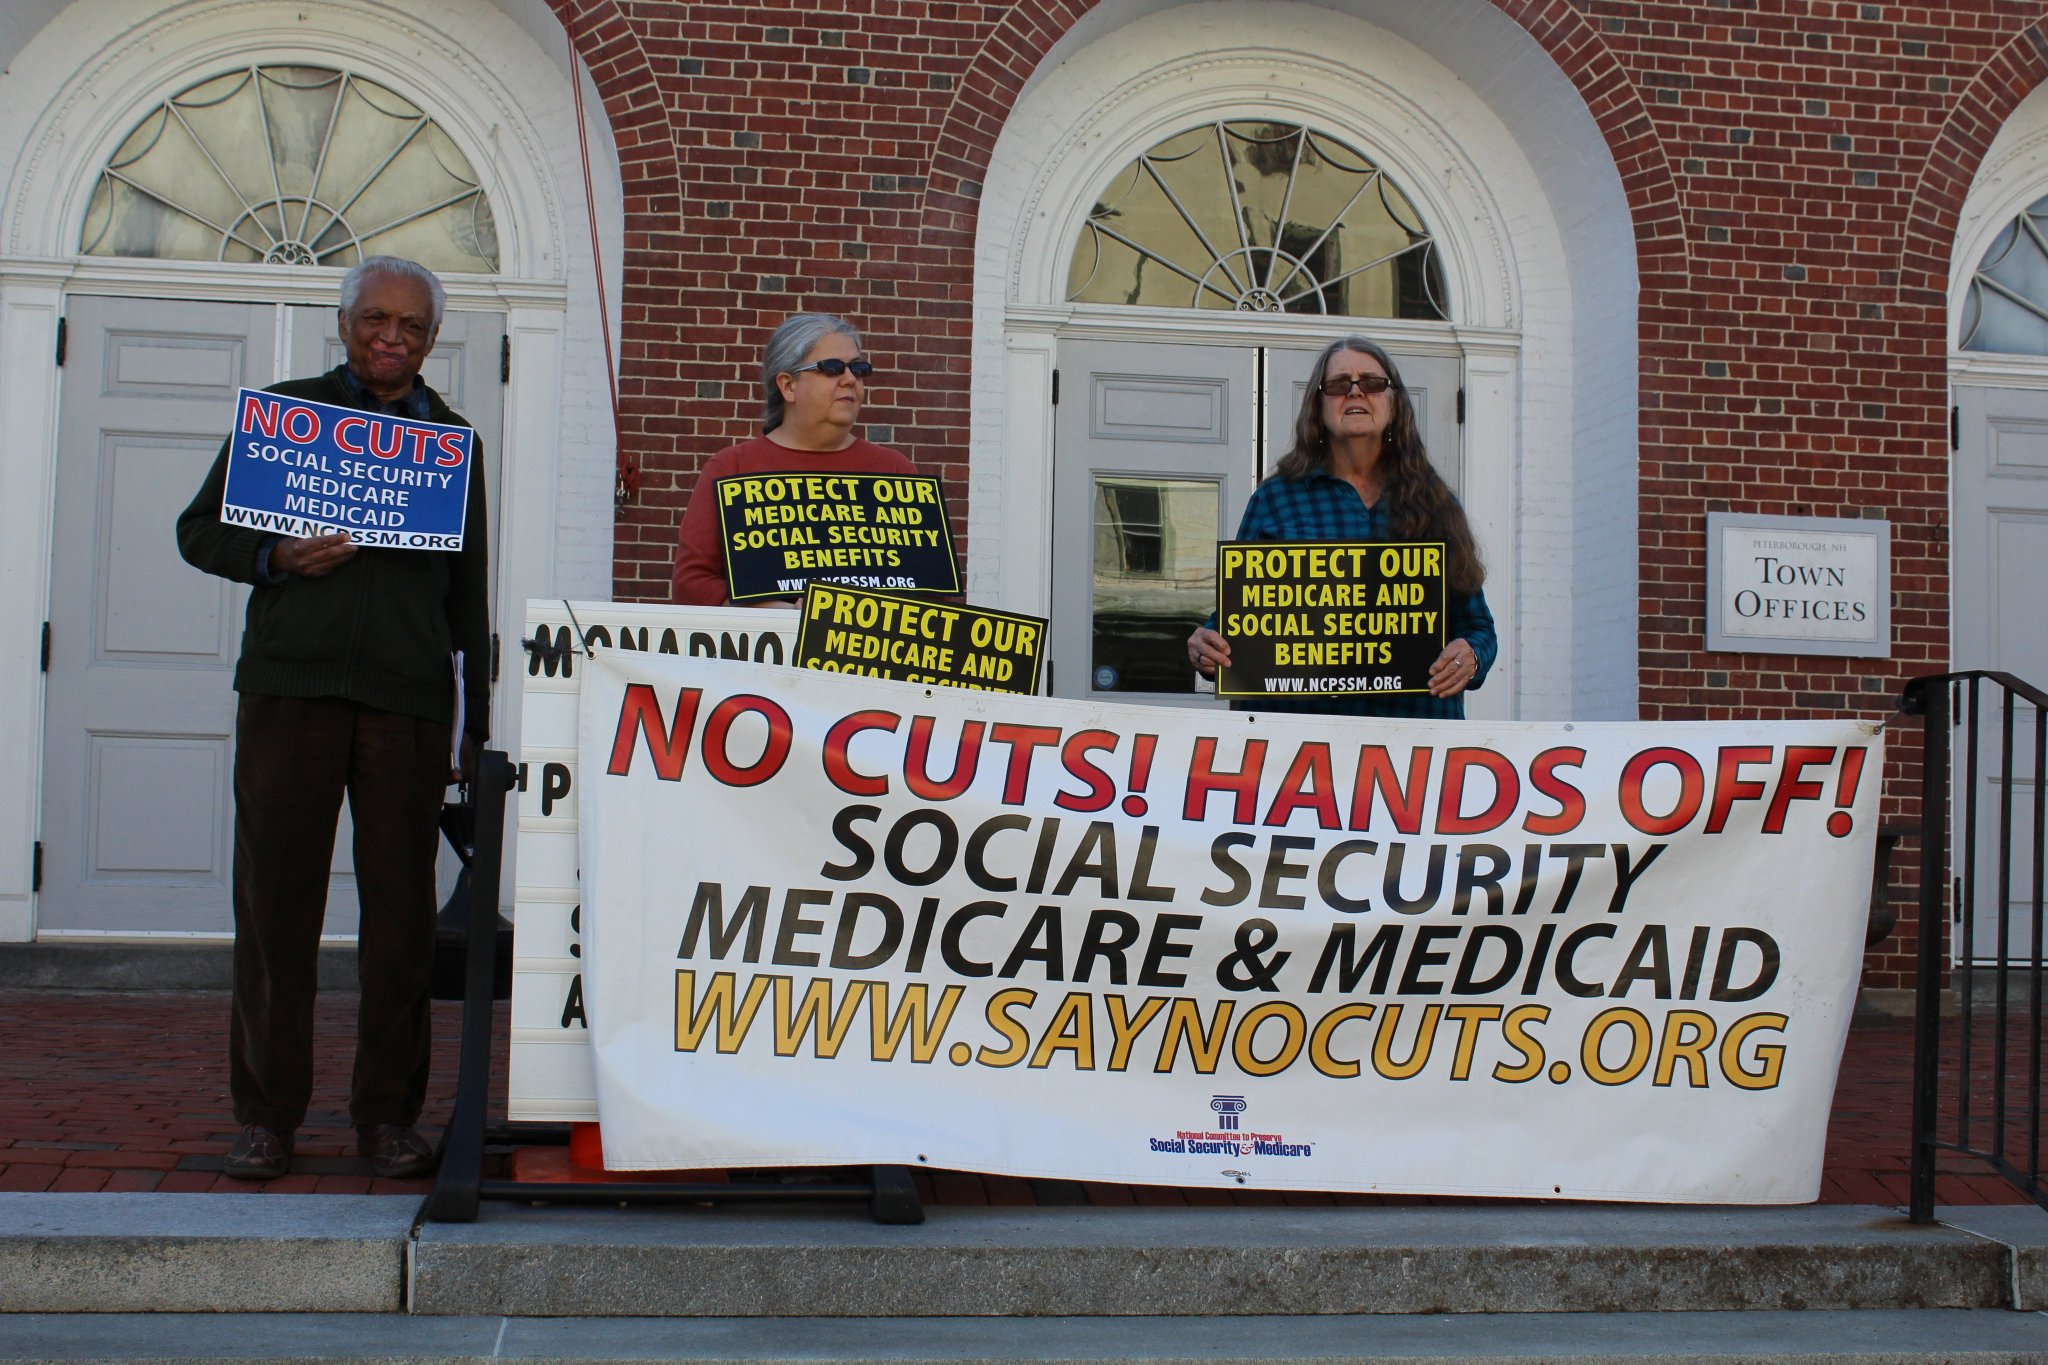 Some advocates w/our Protect #Medicare & Social Security Benefits signs! Find more info here on how to get involved: https://t.co/SRr9pJO4fw https://t.co/Tiw6OyjYTg